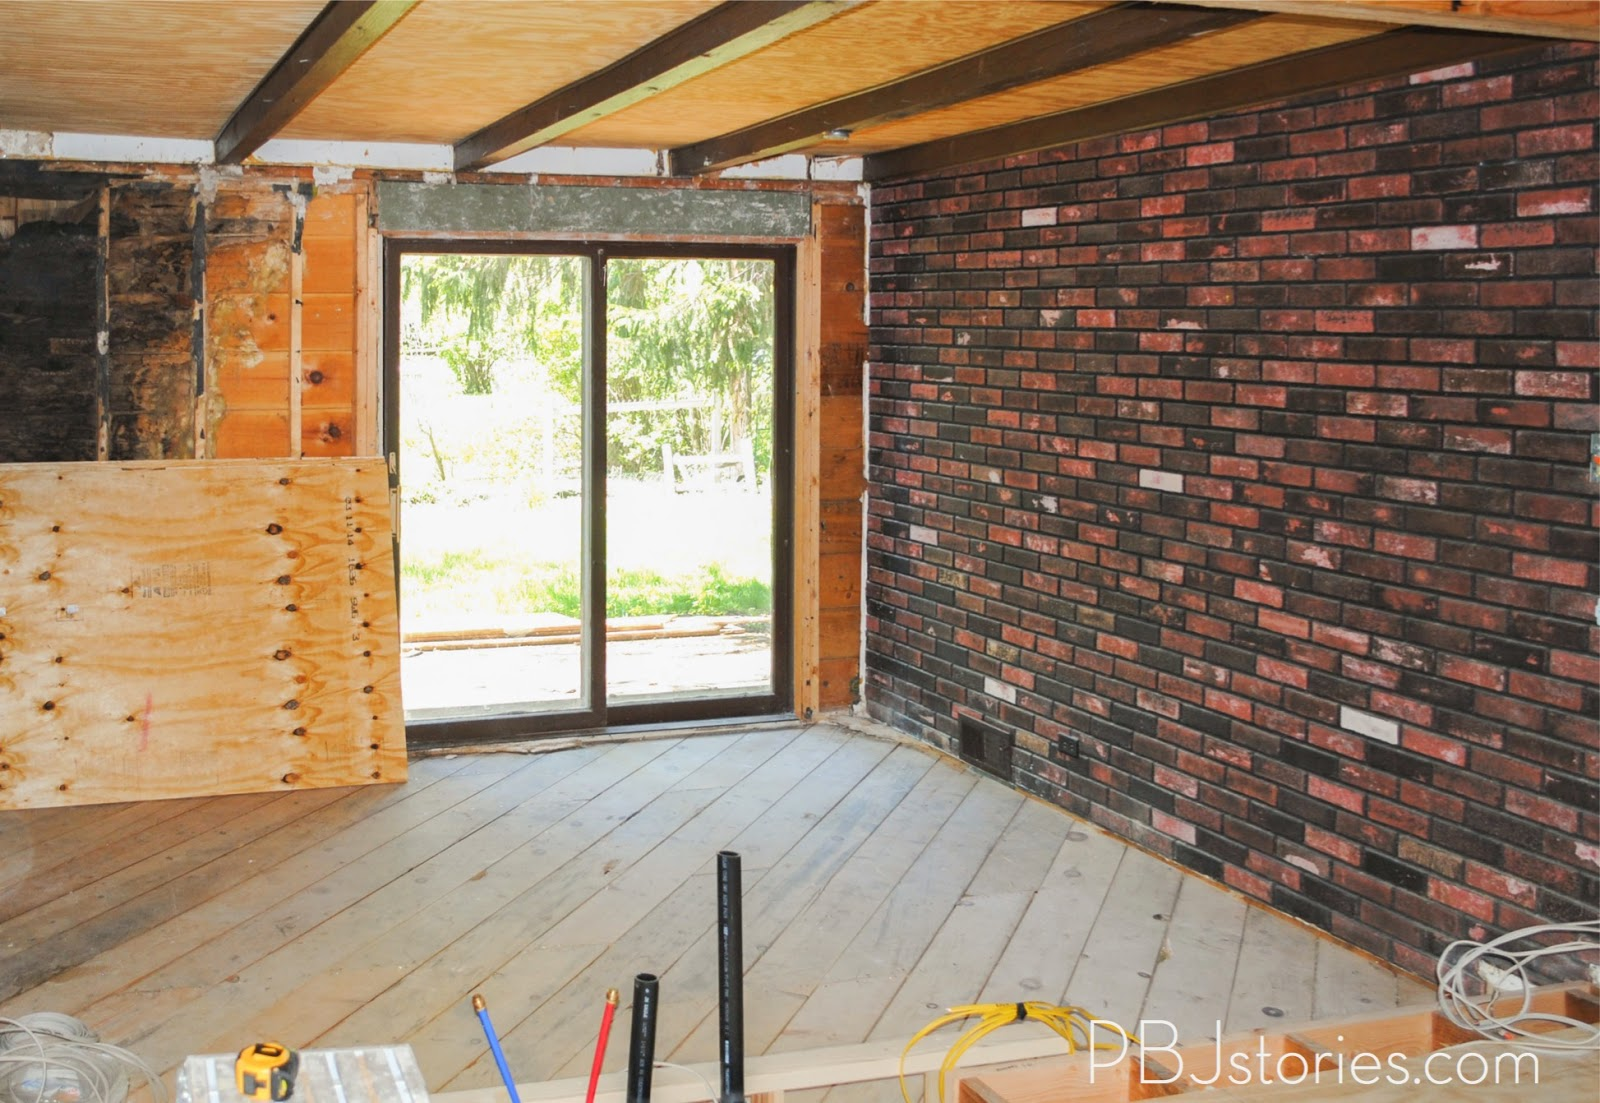 pbjstories: how to paint an interior brick wall | #pbjreno